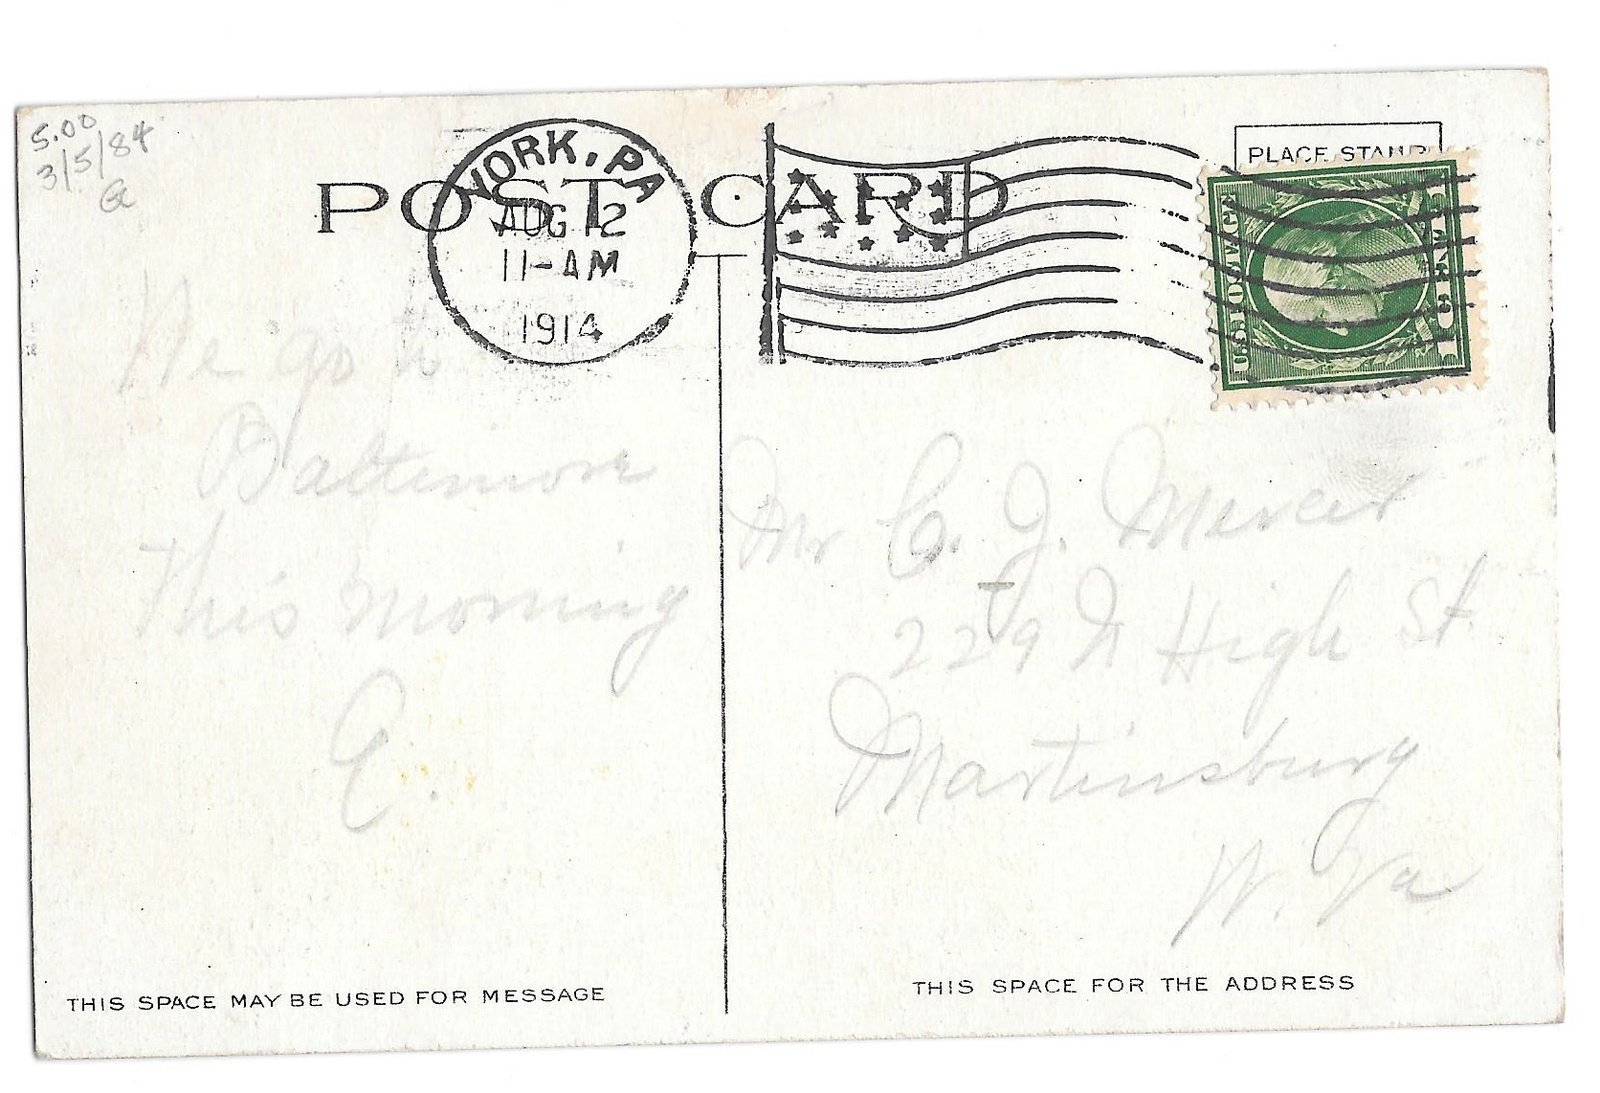 York PA Odd Fellows Hall IOOF King & George St Vintage 1914 Postcard Flag Cancel